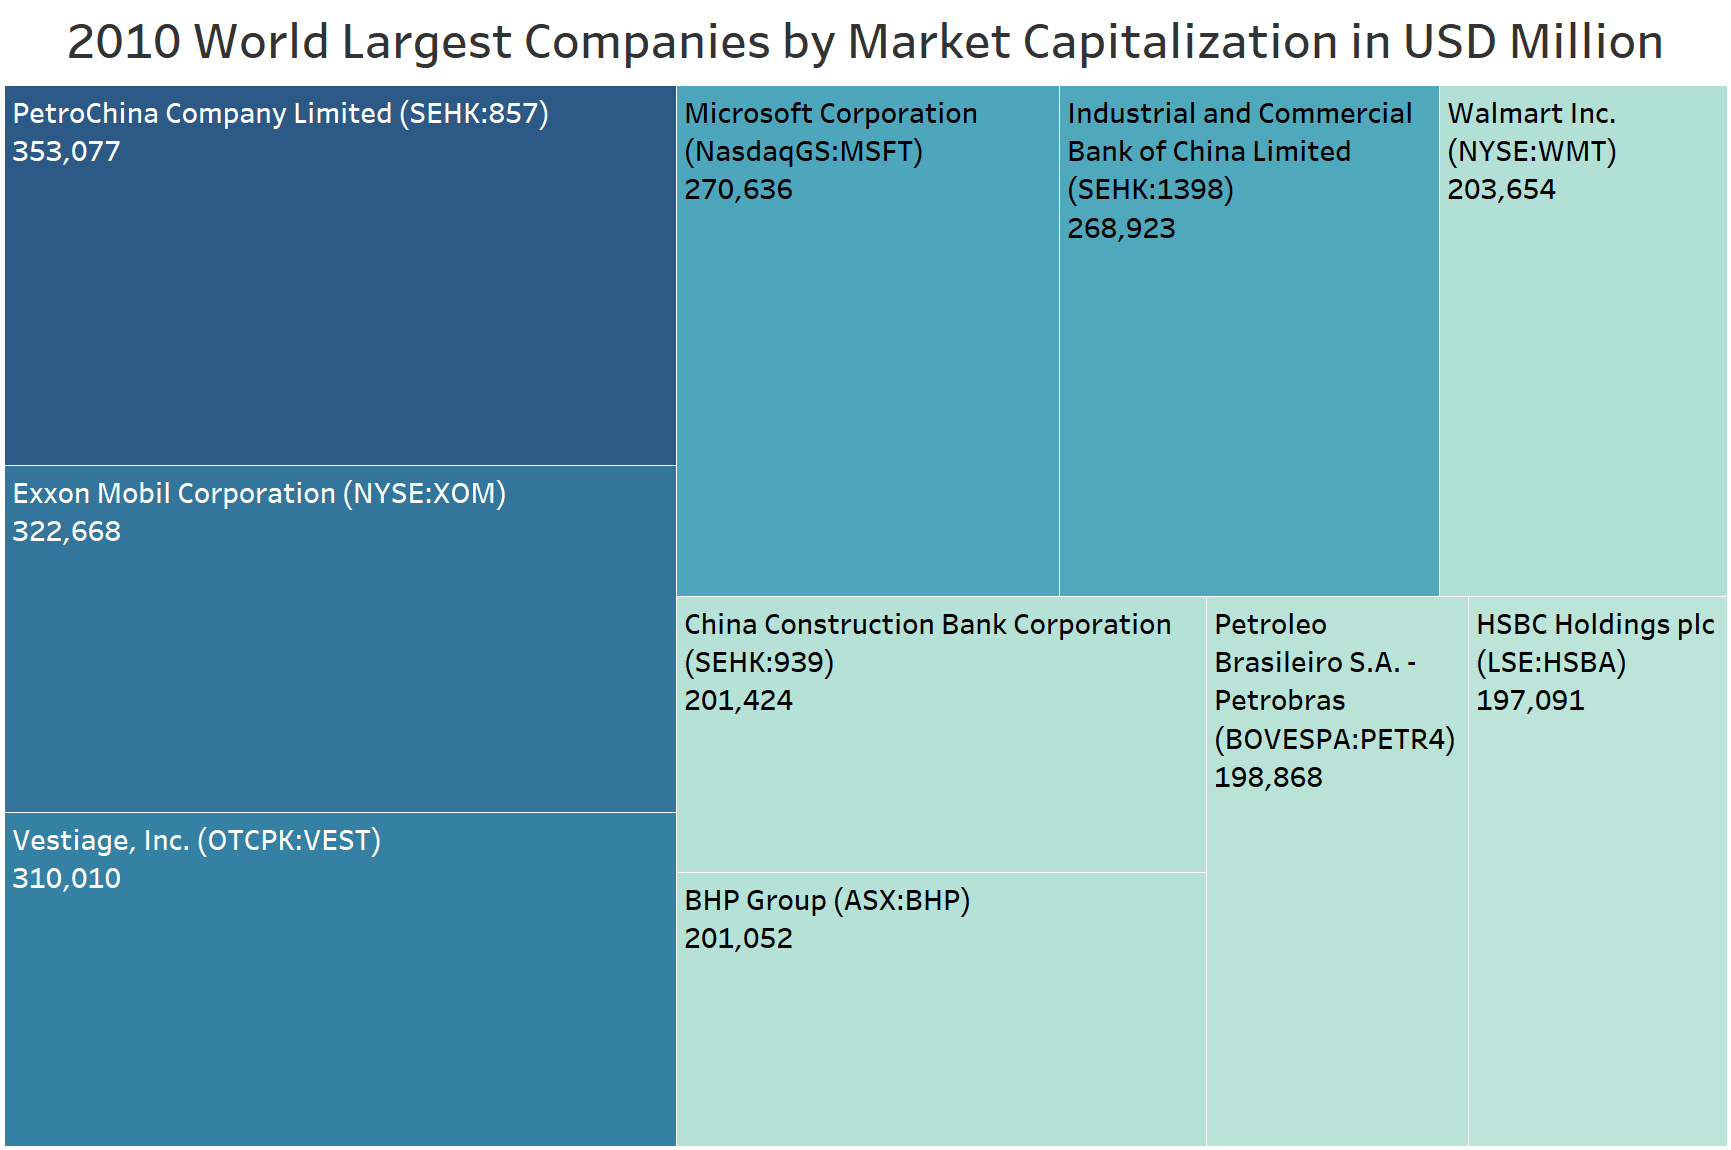 2010 World Largest Companies by market capitalization